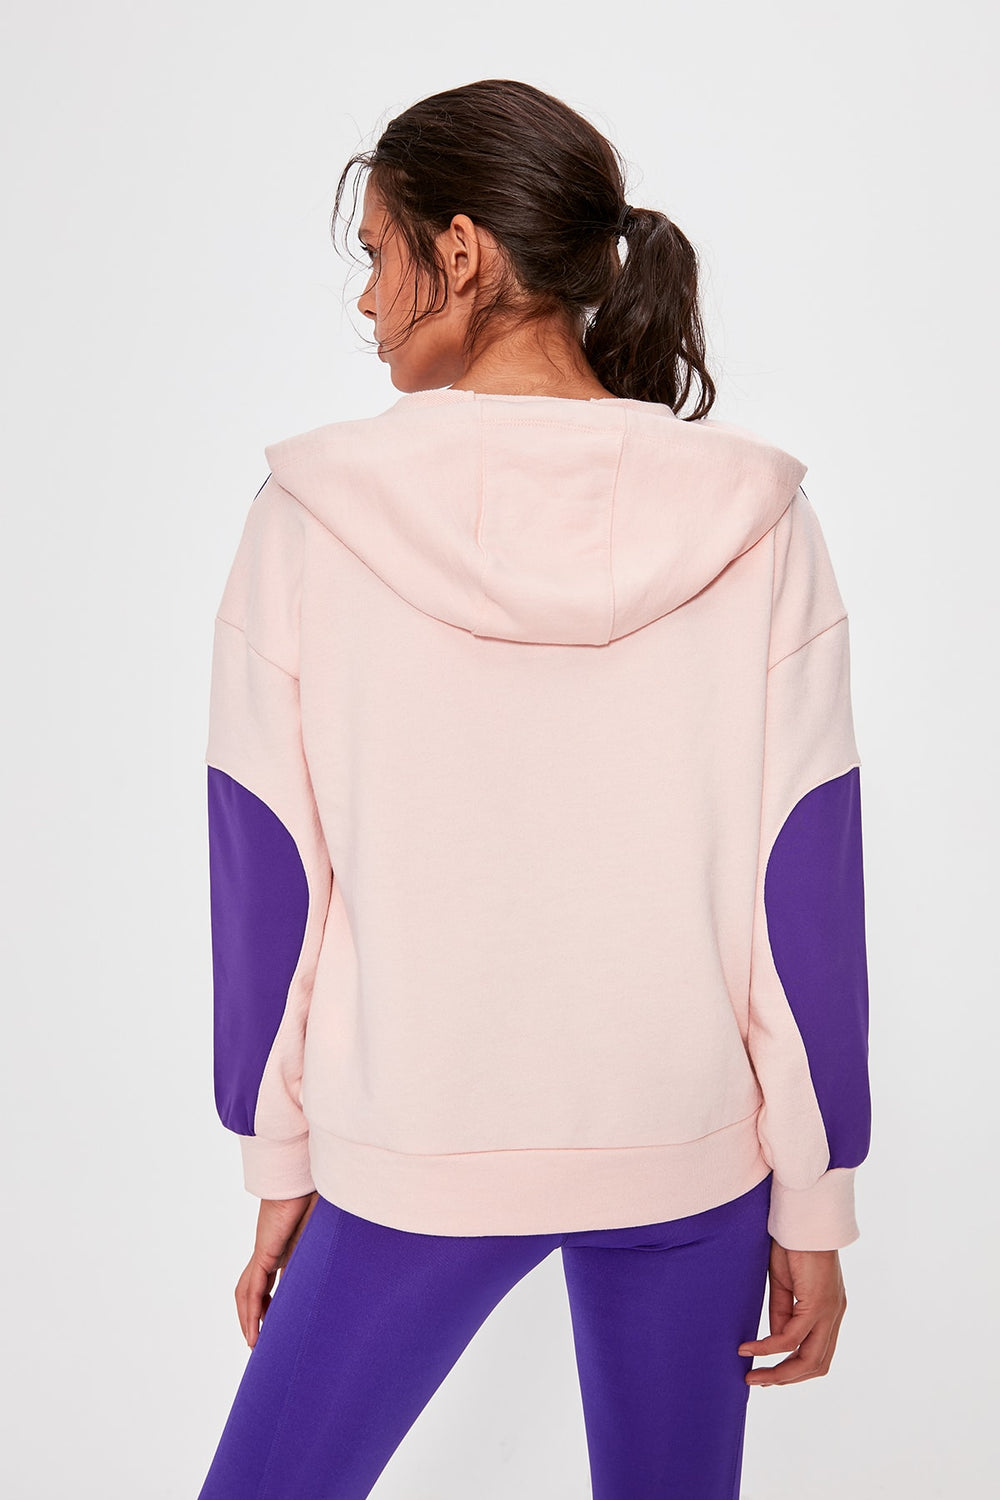 Miss Zut Miss Zut With Color Block Sports Sweatshirt Miss Zut &CO